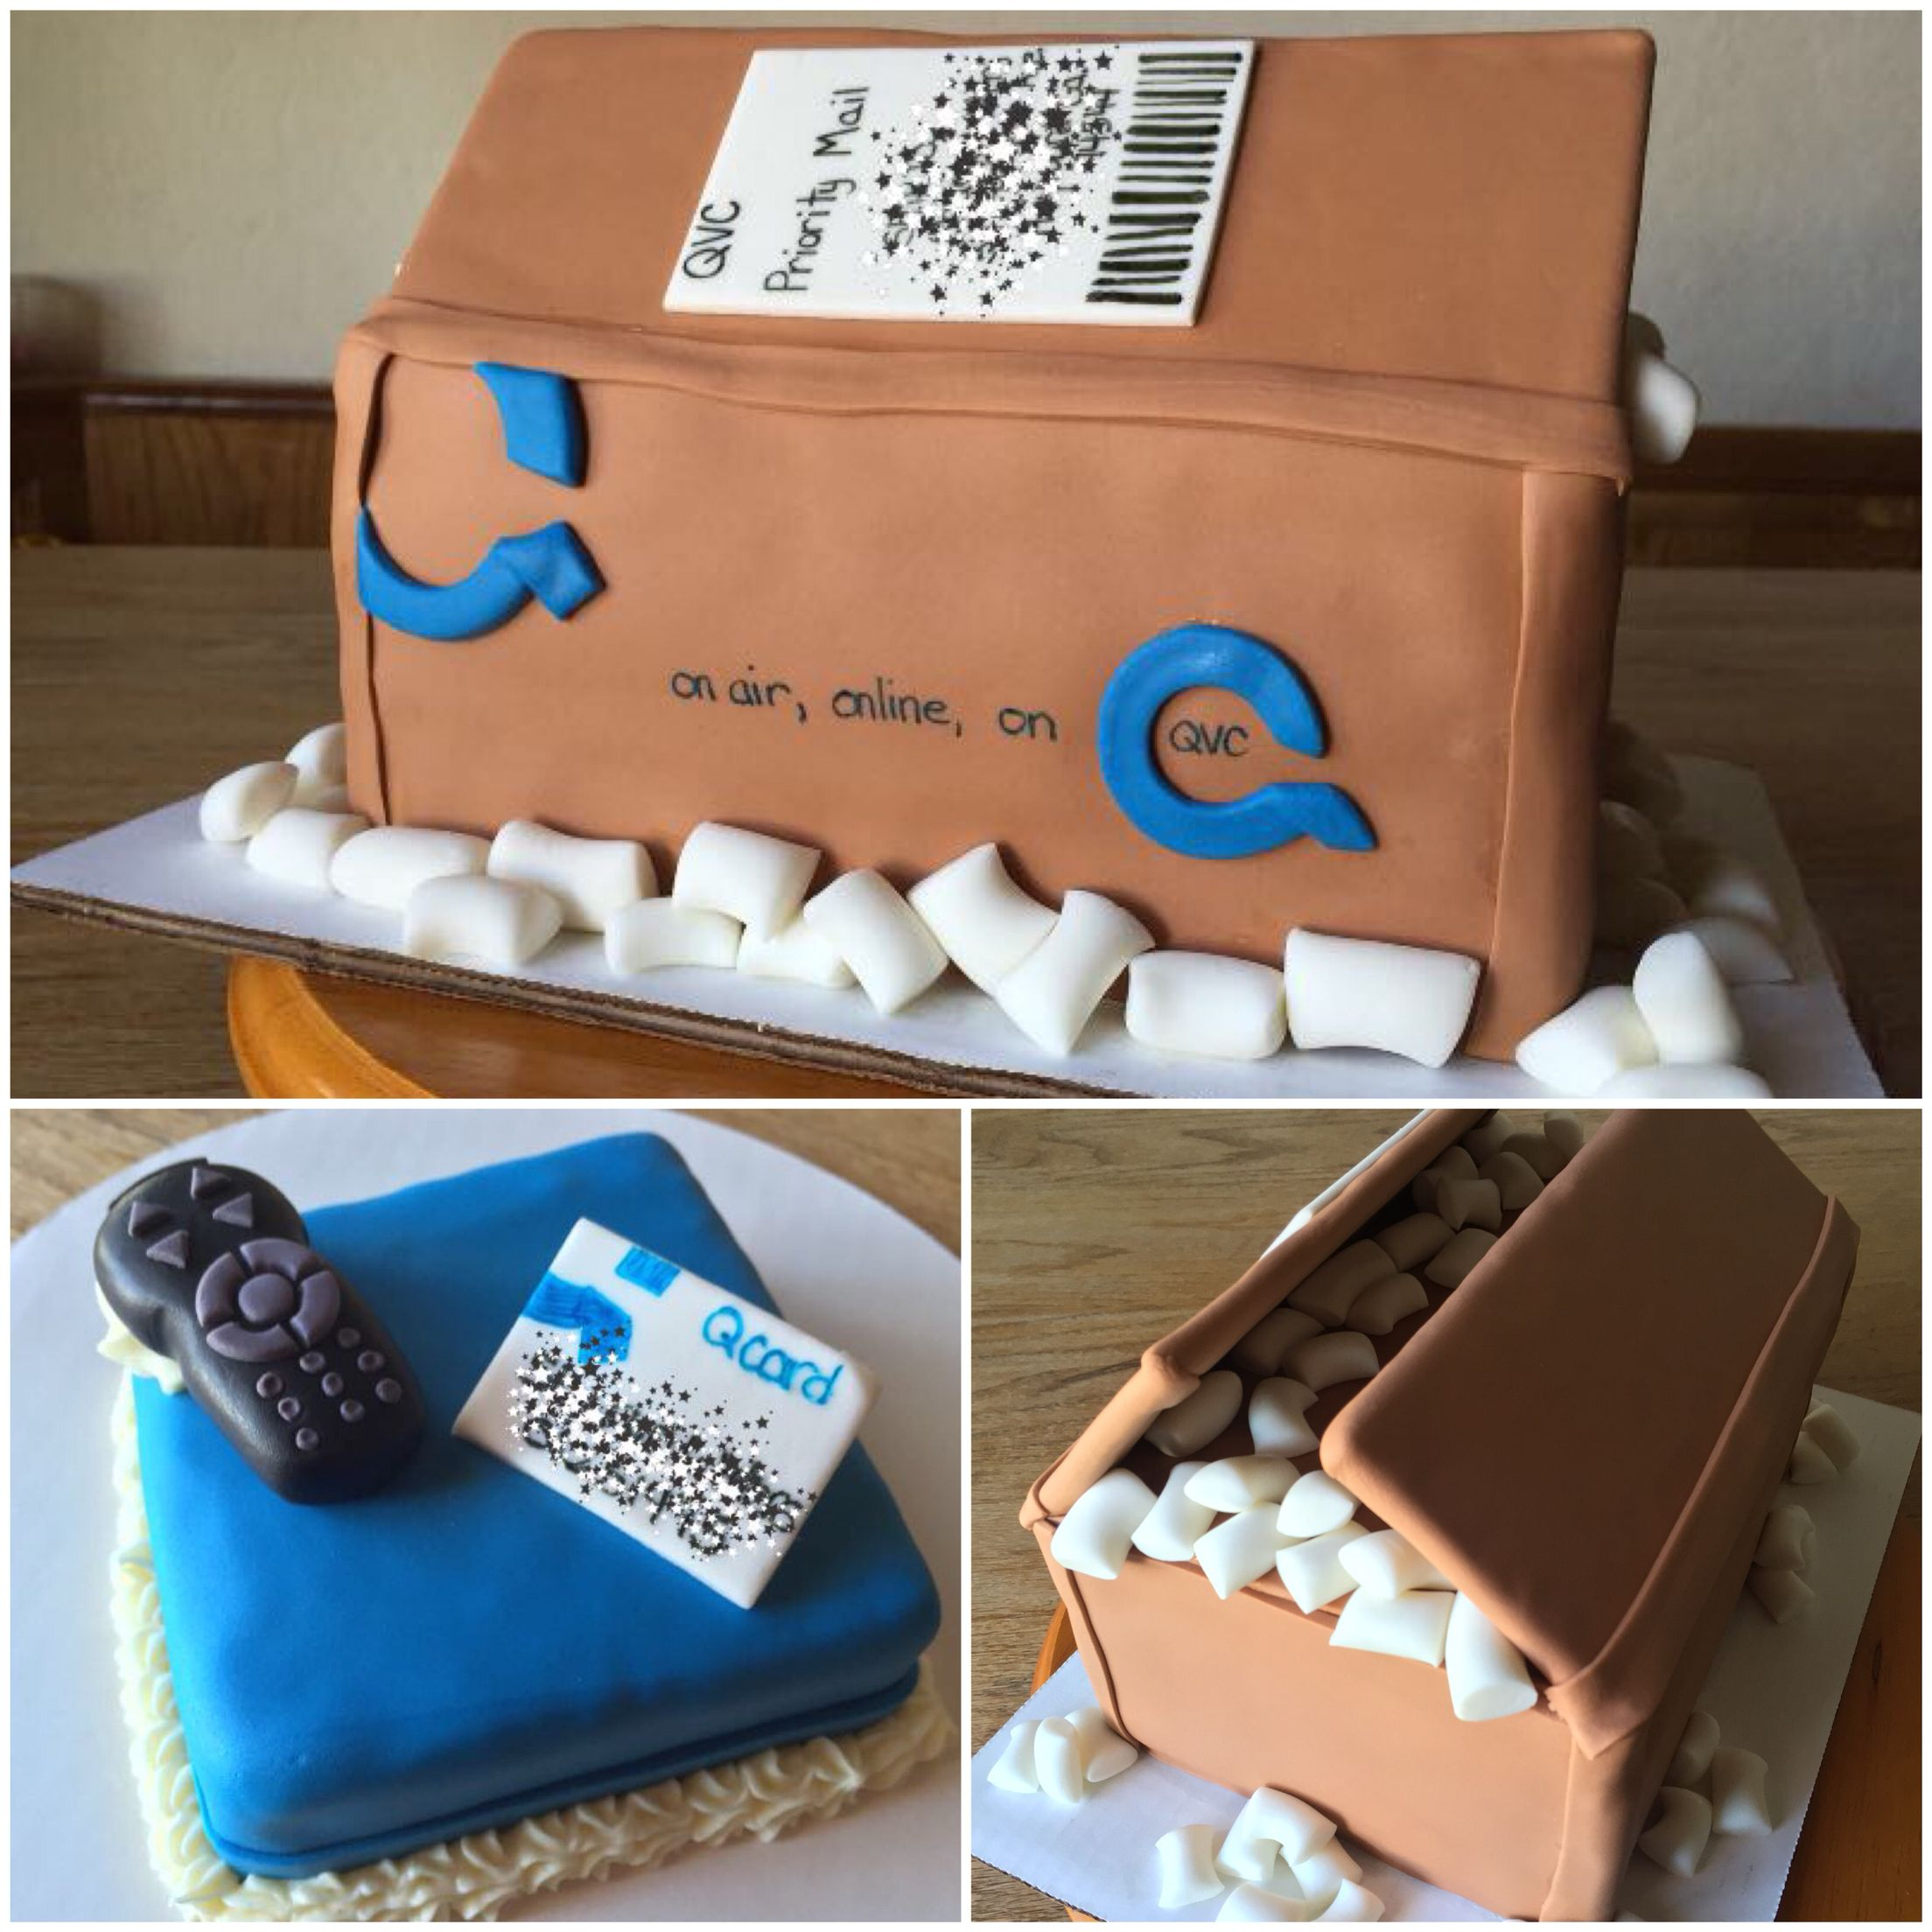 Incredible Qvc Shipping Box And Remote Cake With Images Box Cake Cake Funny Birthday Cards Online Aboleapandamsfinfo